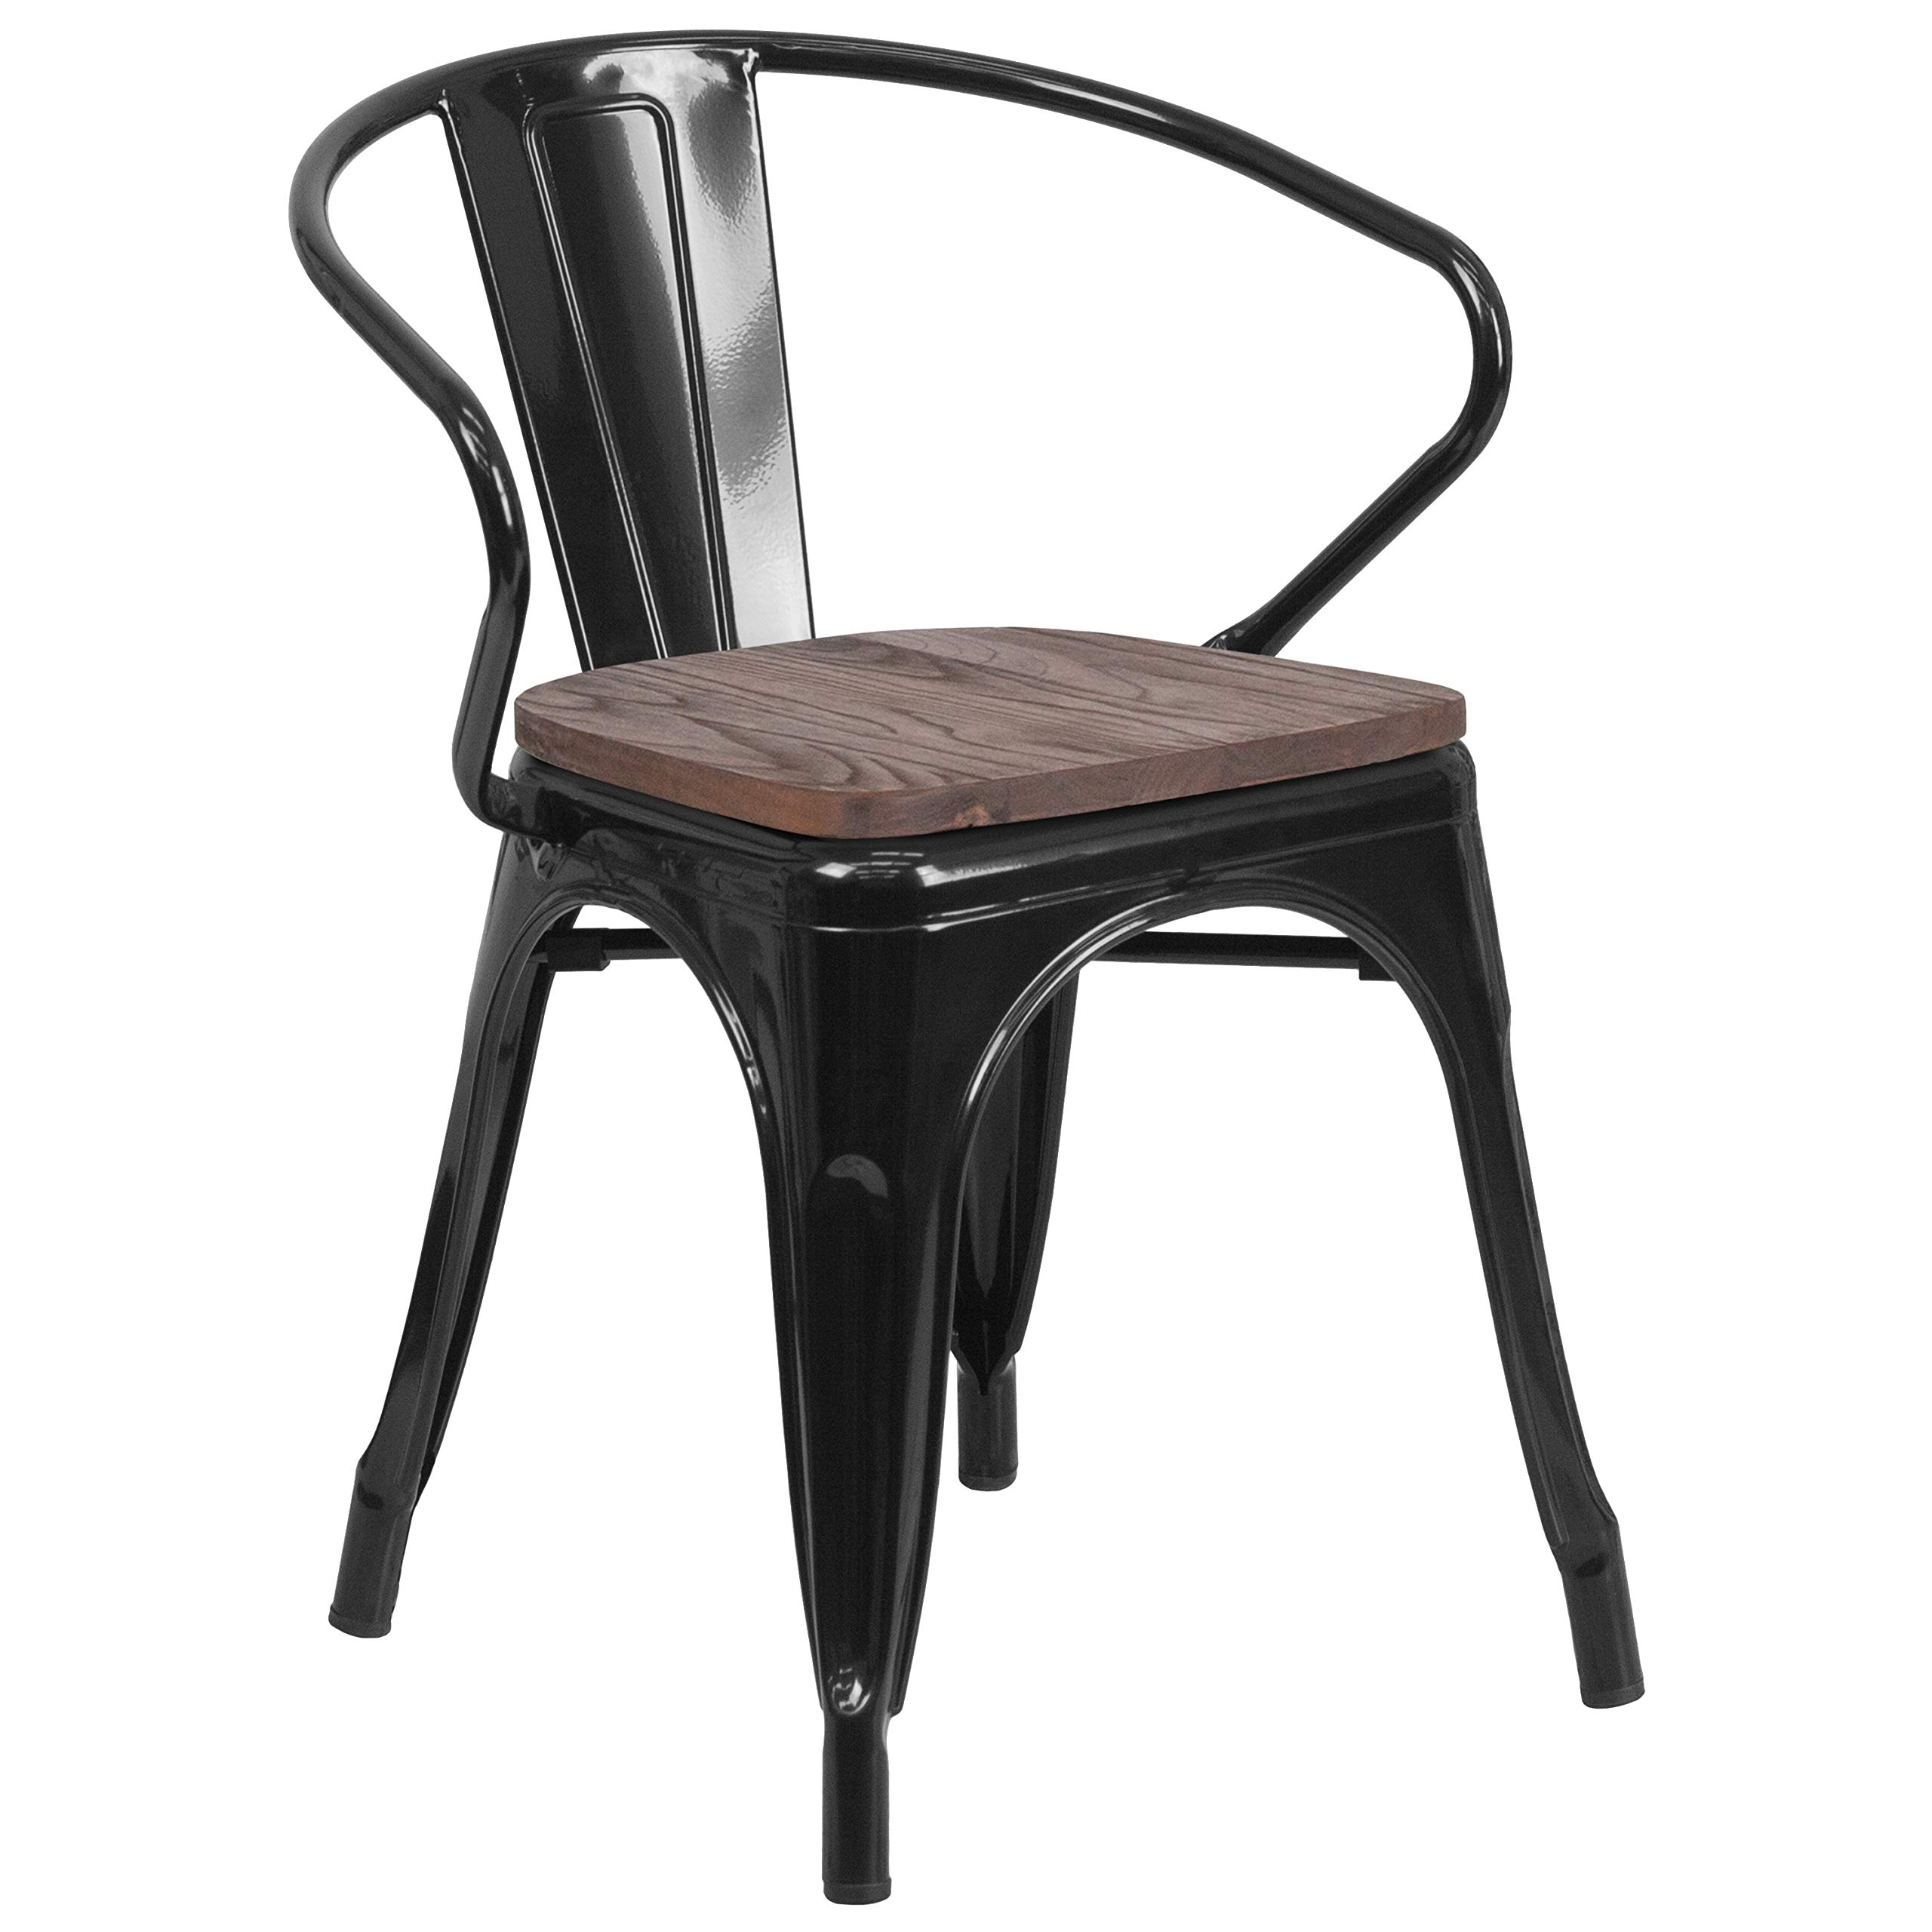 Flash Furniture CH-31270-BK-WD-GG Metal Colorful Restaurant Chairs, 1 Pack, Black